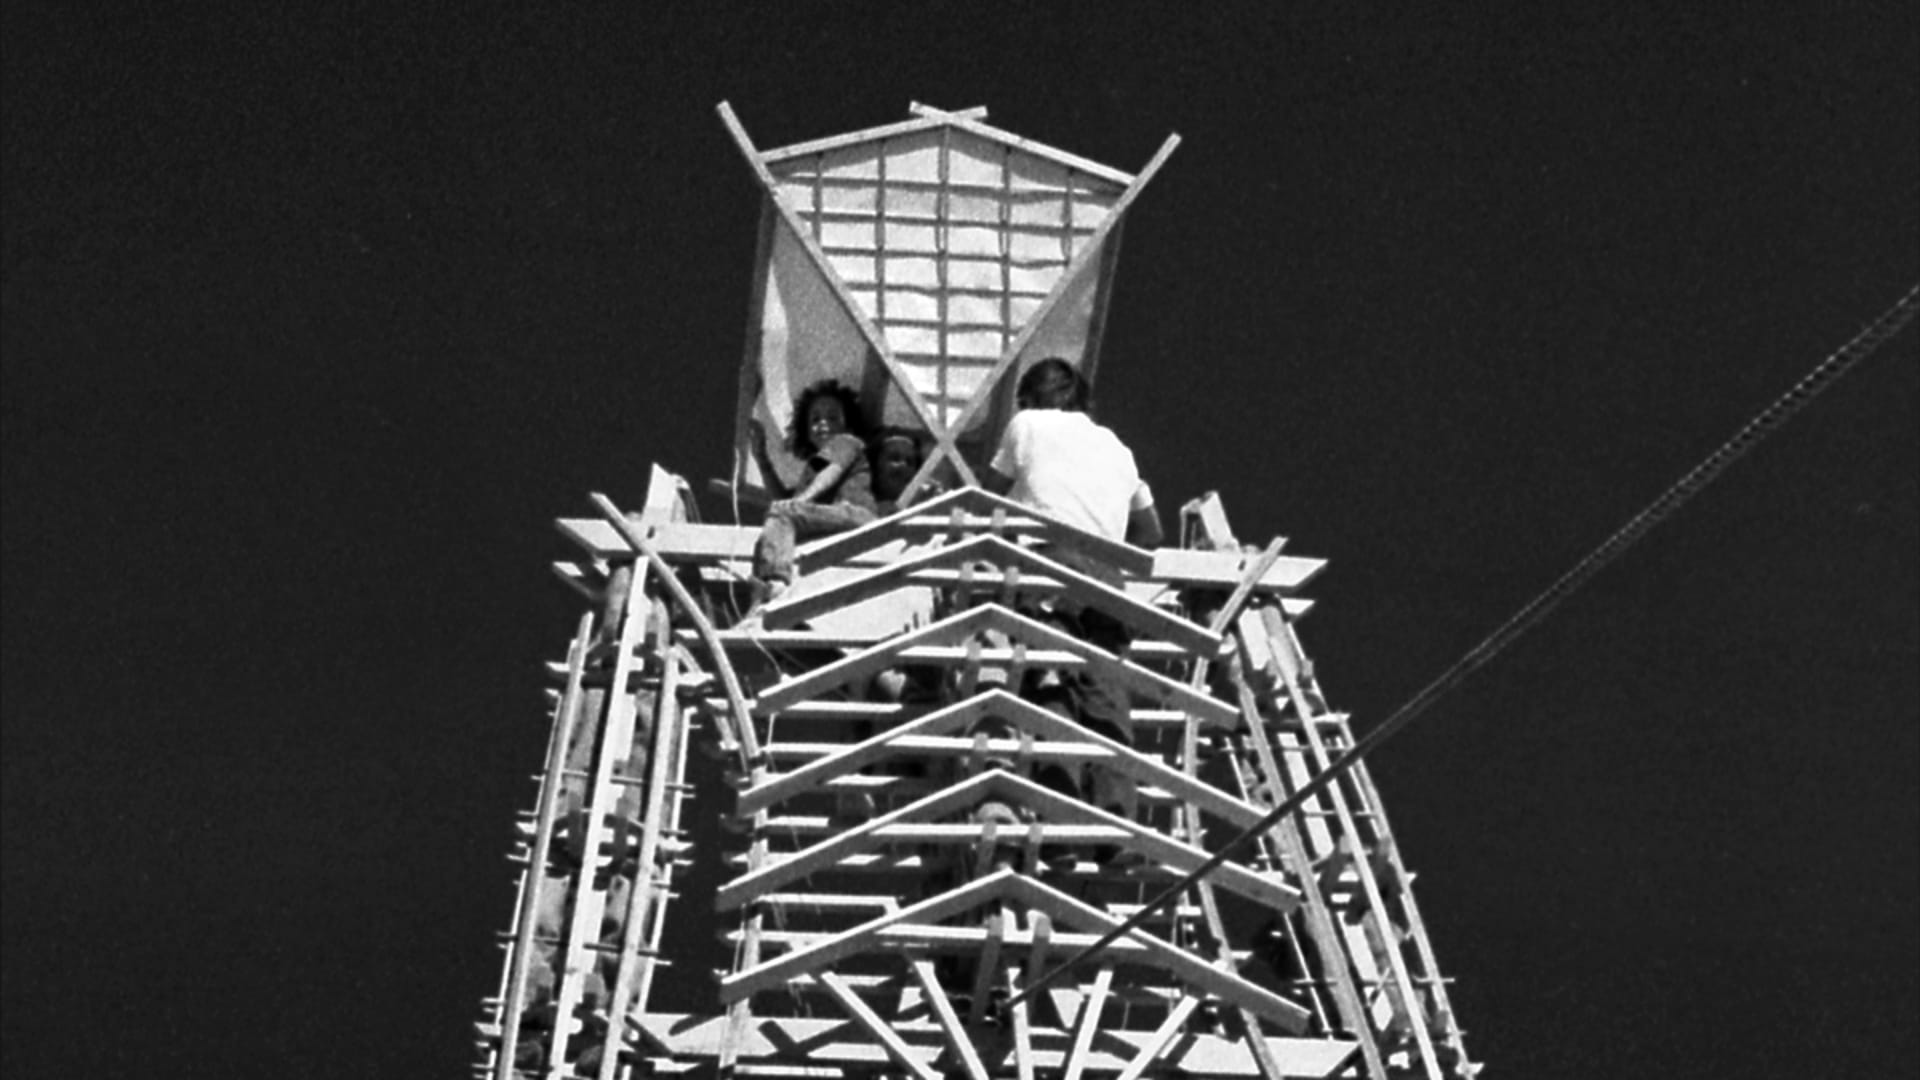 12 meters tall and build to burn. The wooden effigy back in 1990. By Stewart Harvey